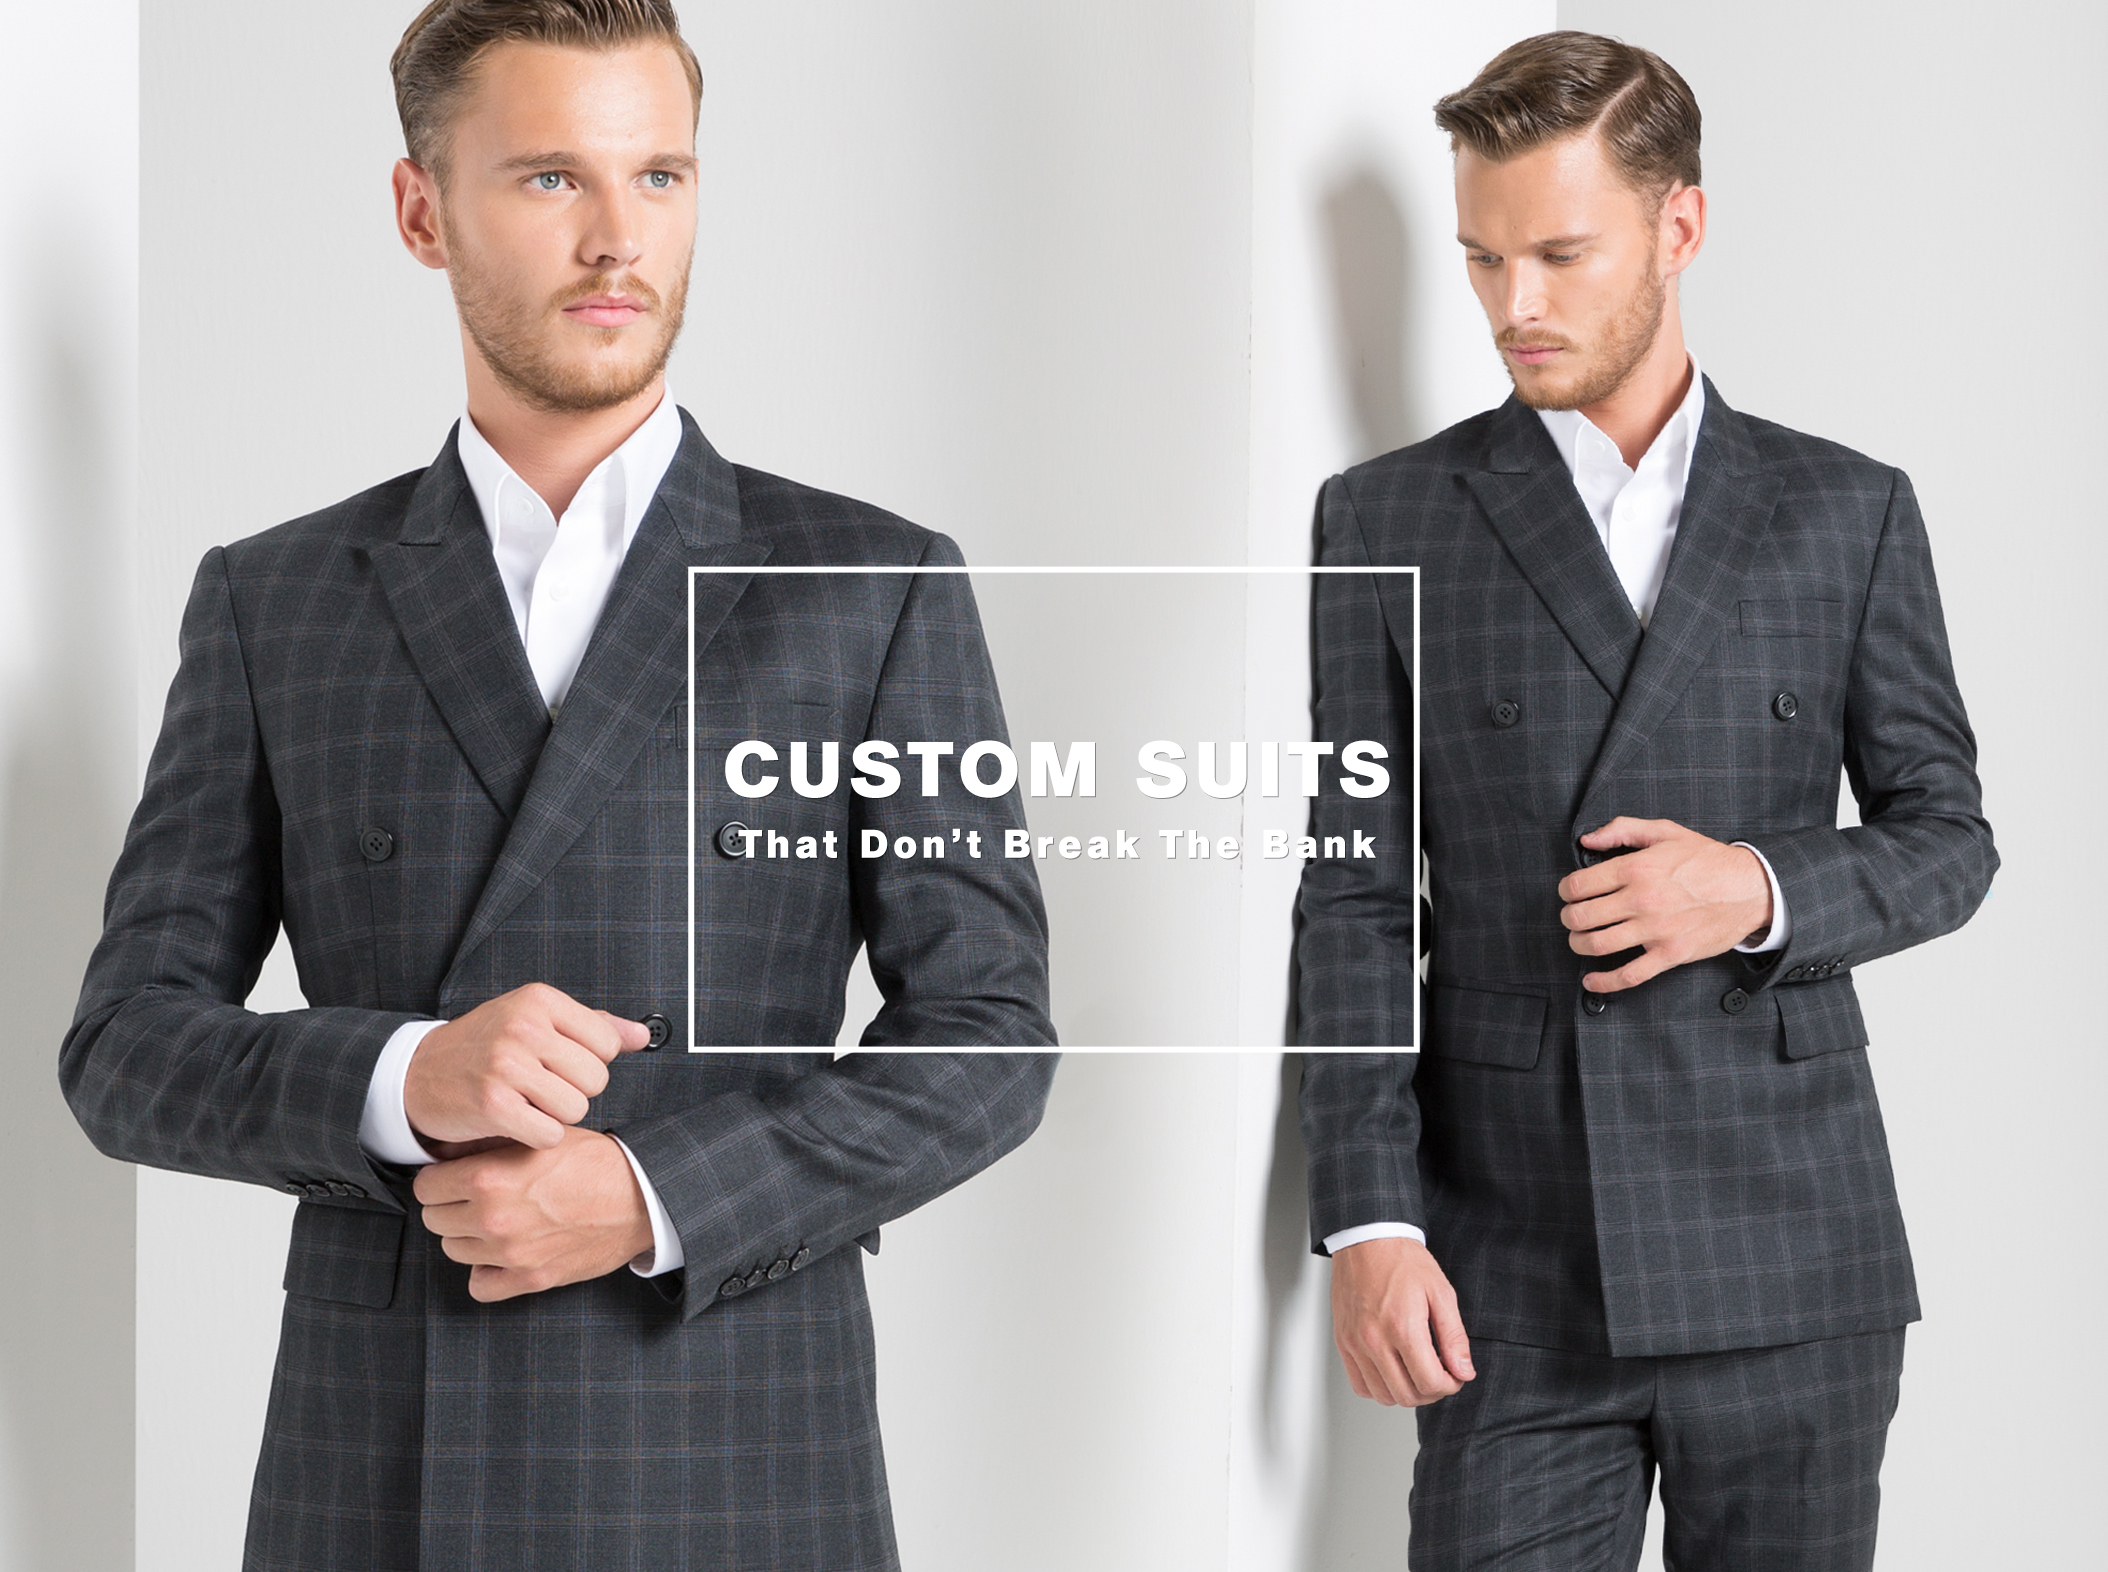 Custom Suits That Don't Break The Bank